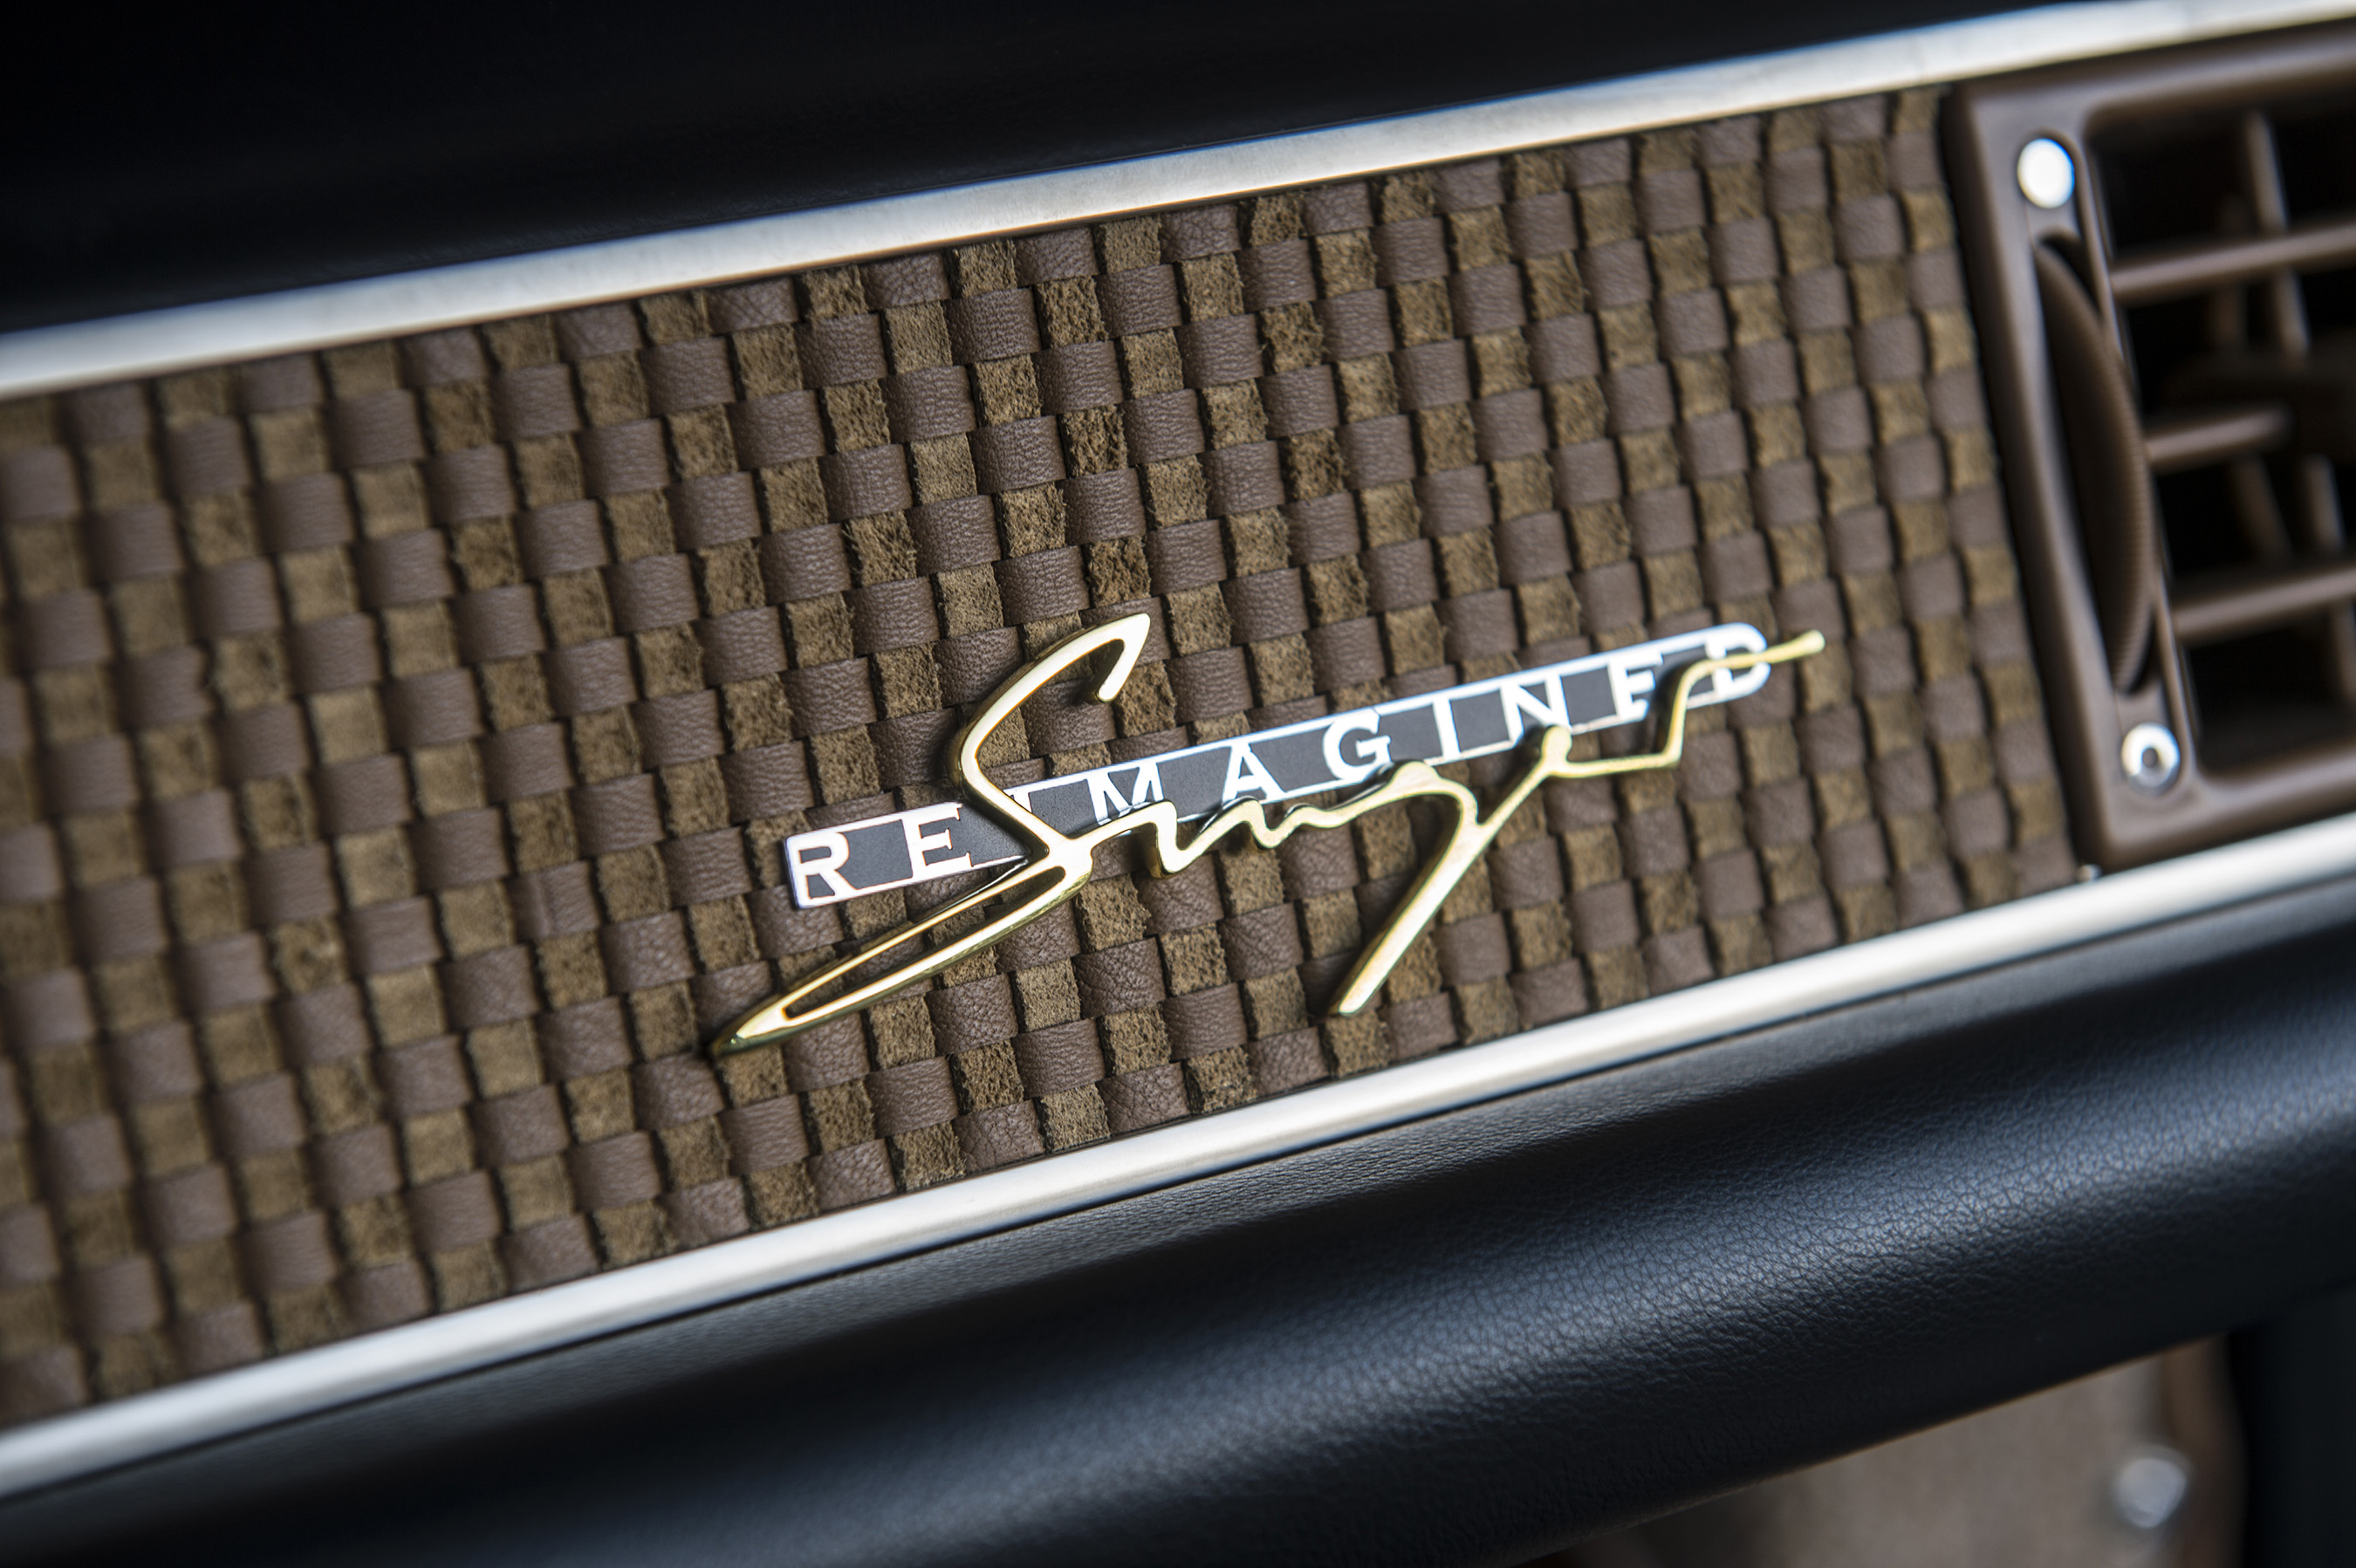 The dashboard leather within 'Florida,' a 1990 Porsche 911 reborn at Singer Vehicle Design in Los Angeles, is a sand-beige suede-mix leather-weave, highlighted by a brass Singer logo